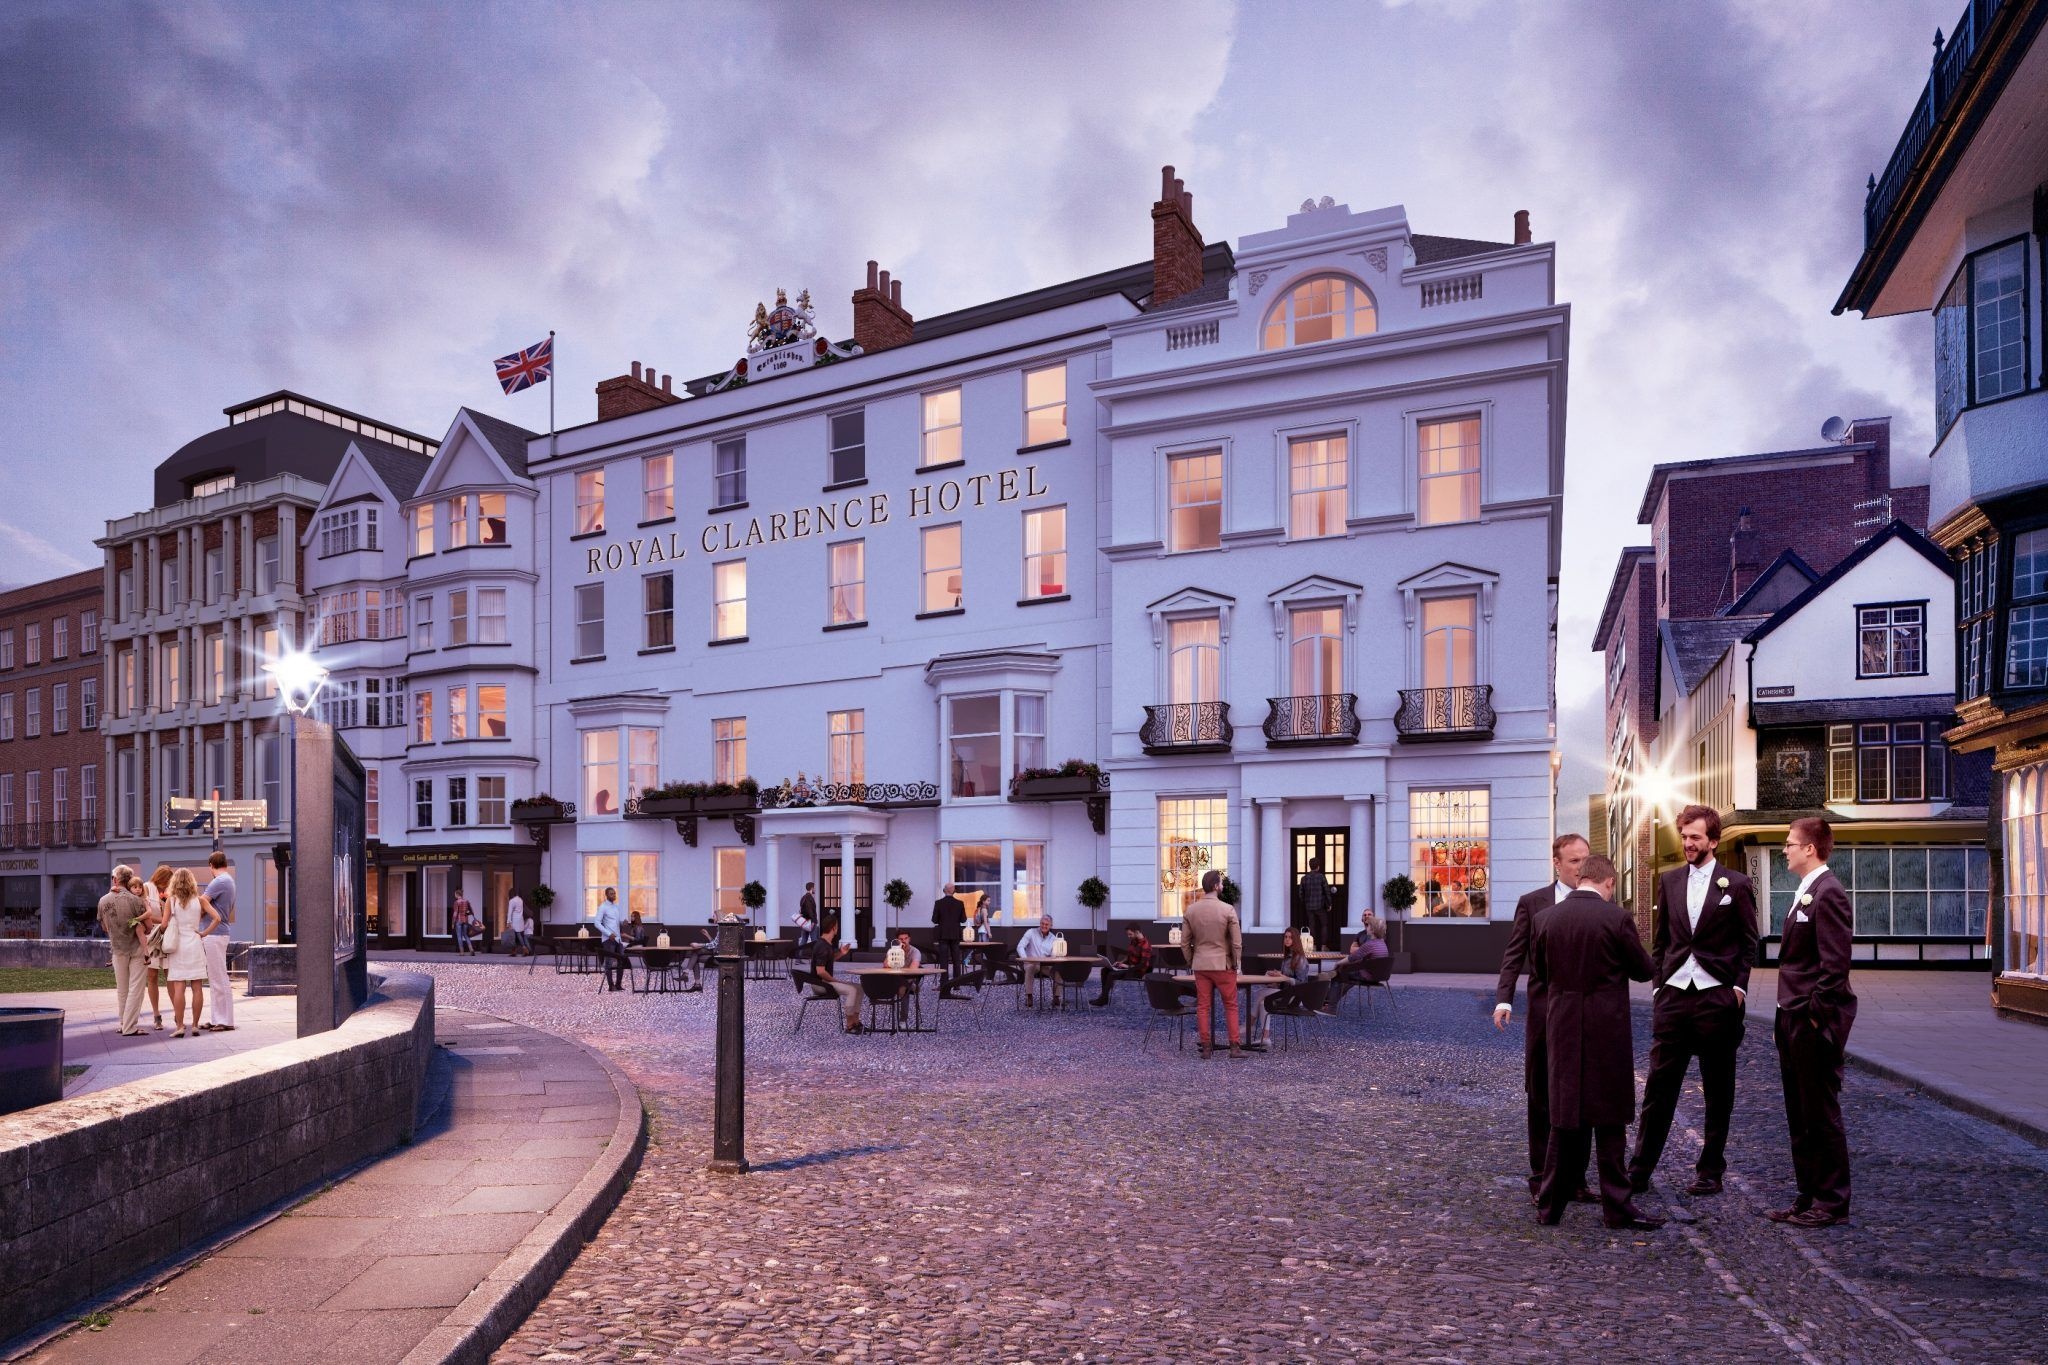 Royal Clarence – Plans Revealed